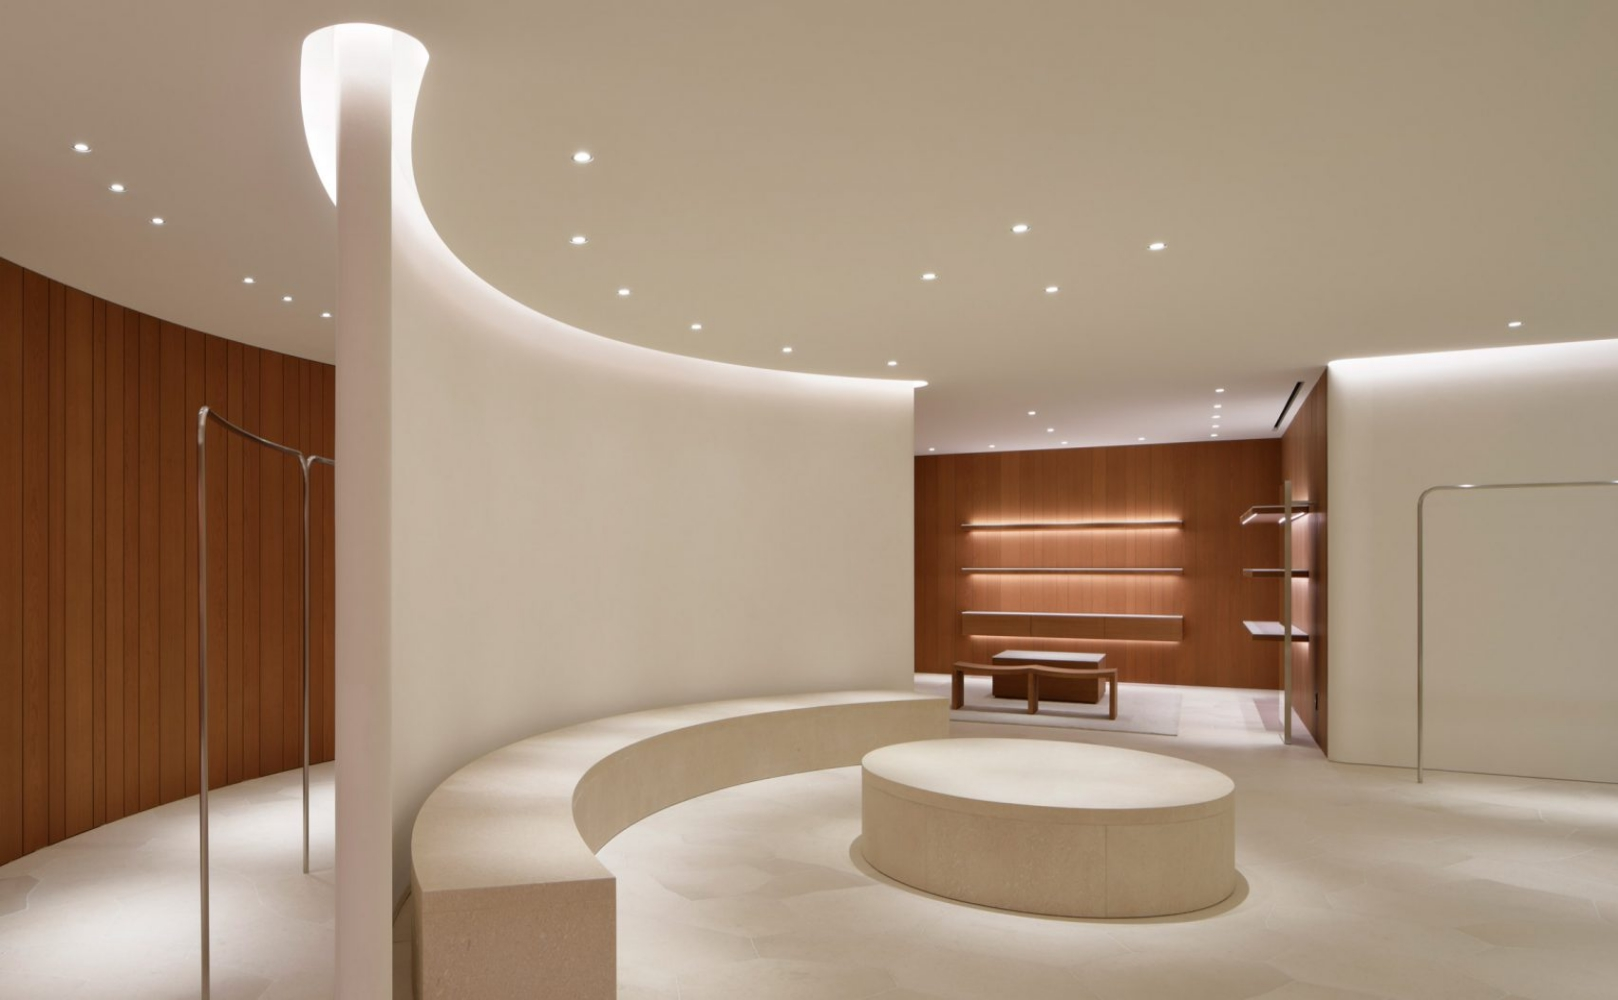 jil-sander-john-pawson-interiors-retail-shops-japan_dezeen_hero-1-1704x959